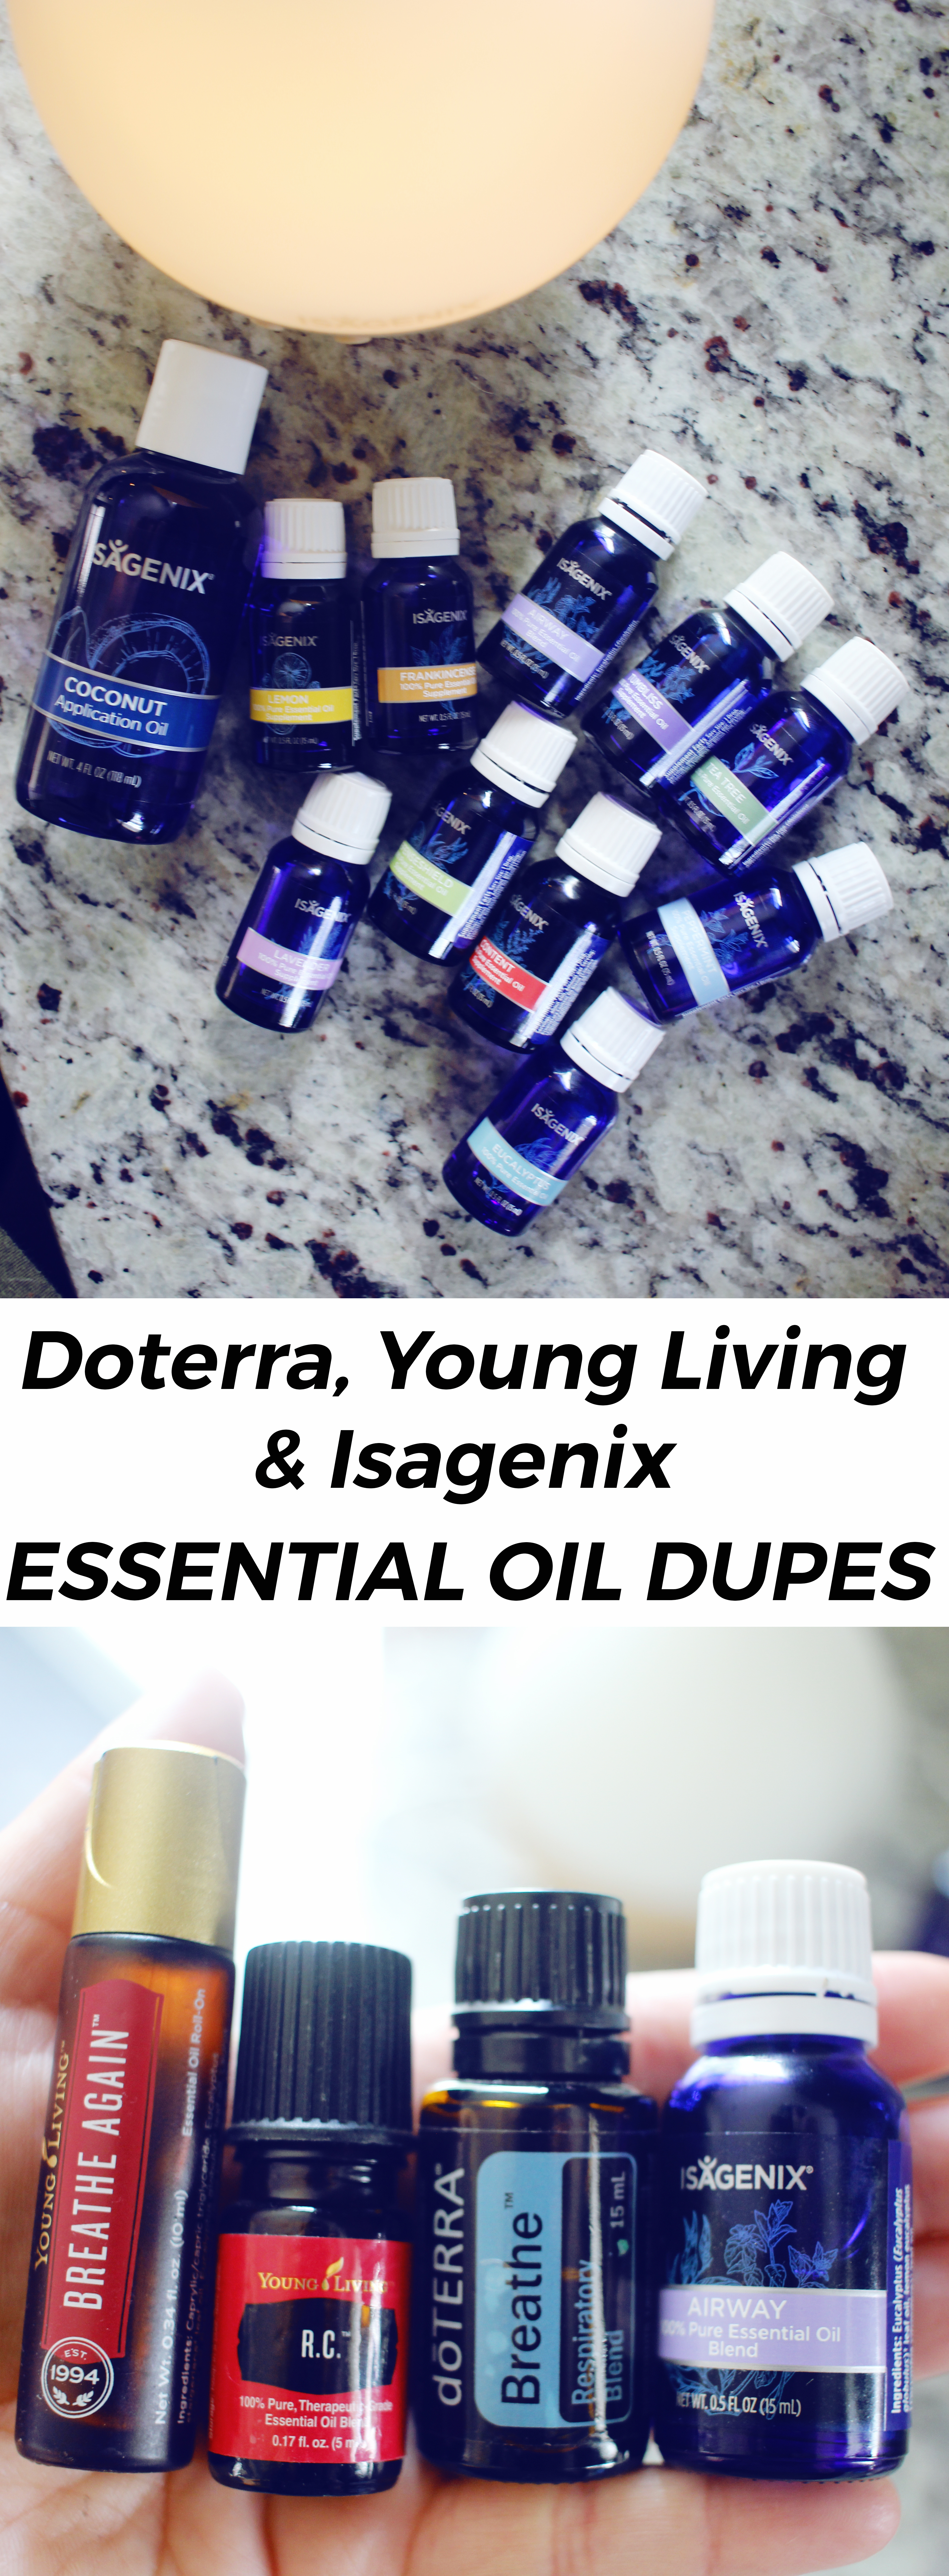 Isagenix Essence Essential Oil Review & Dupes